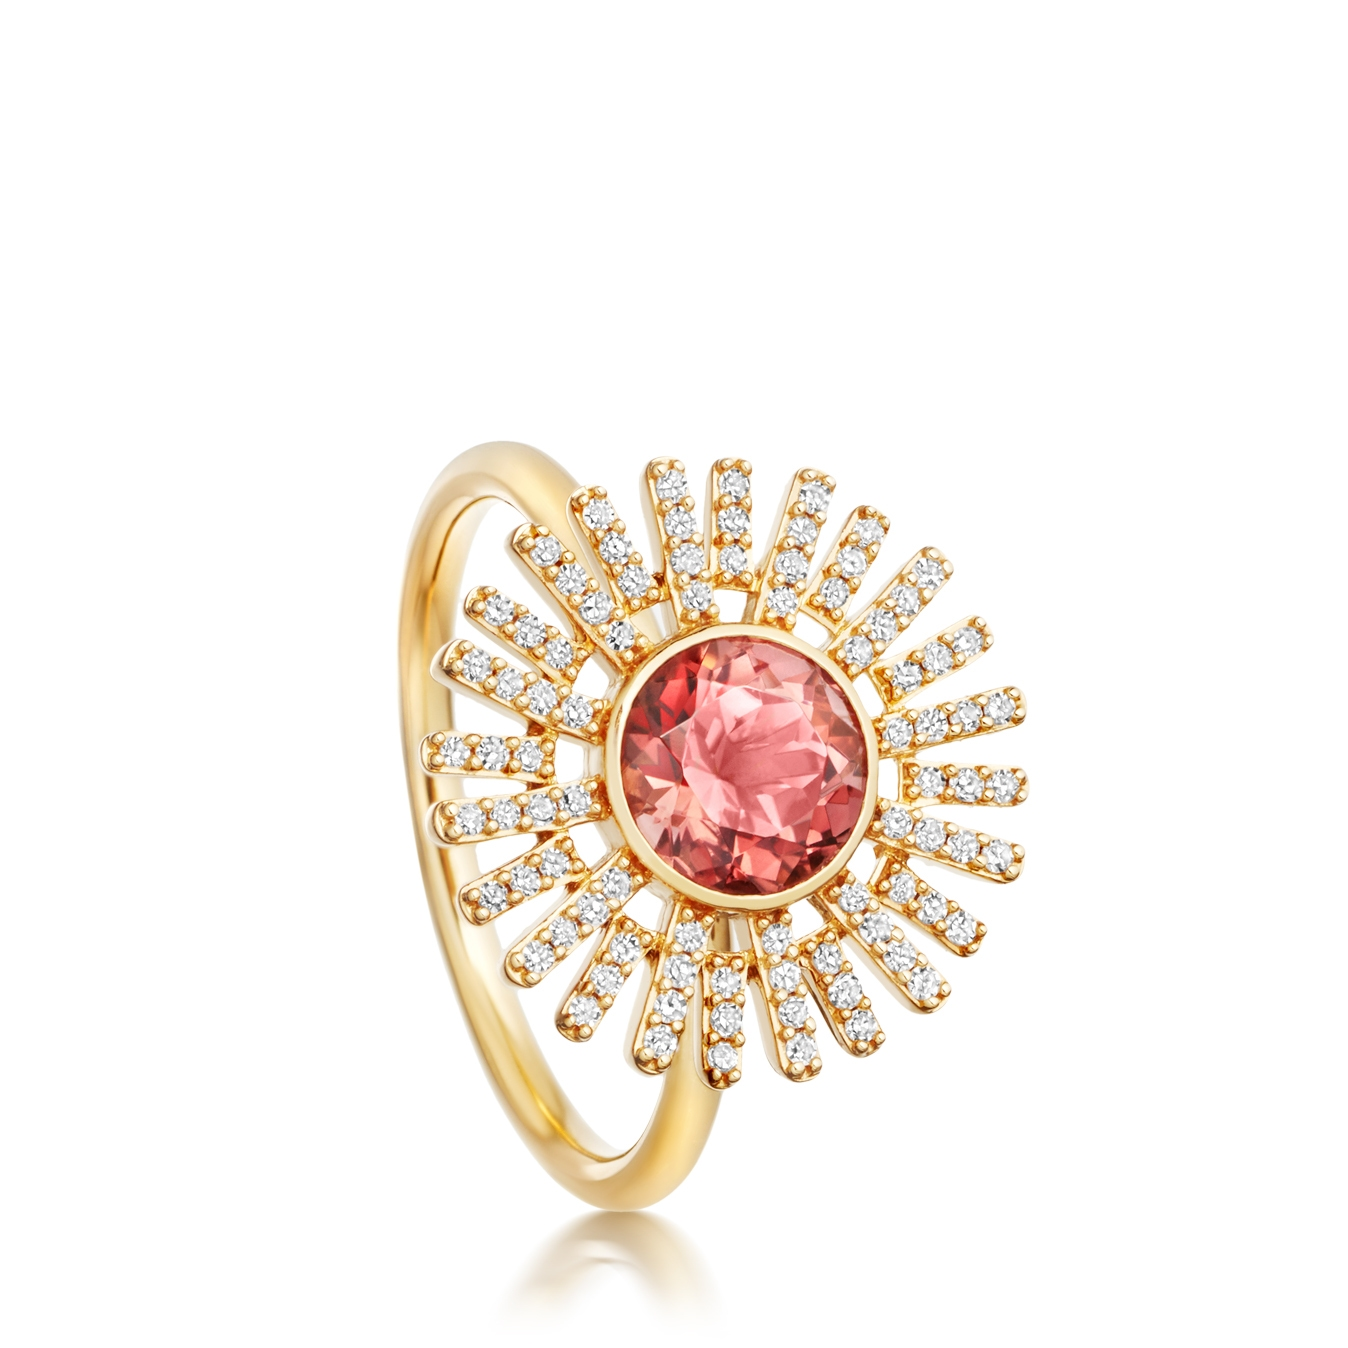 Pink Tourmaline Setting Sun Ring